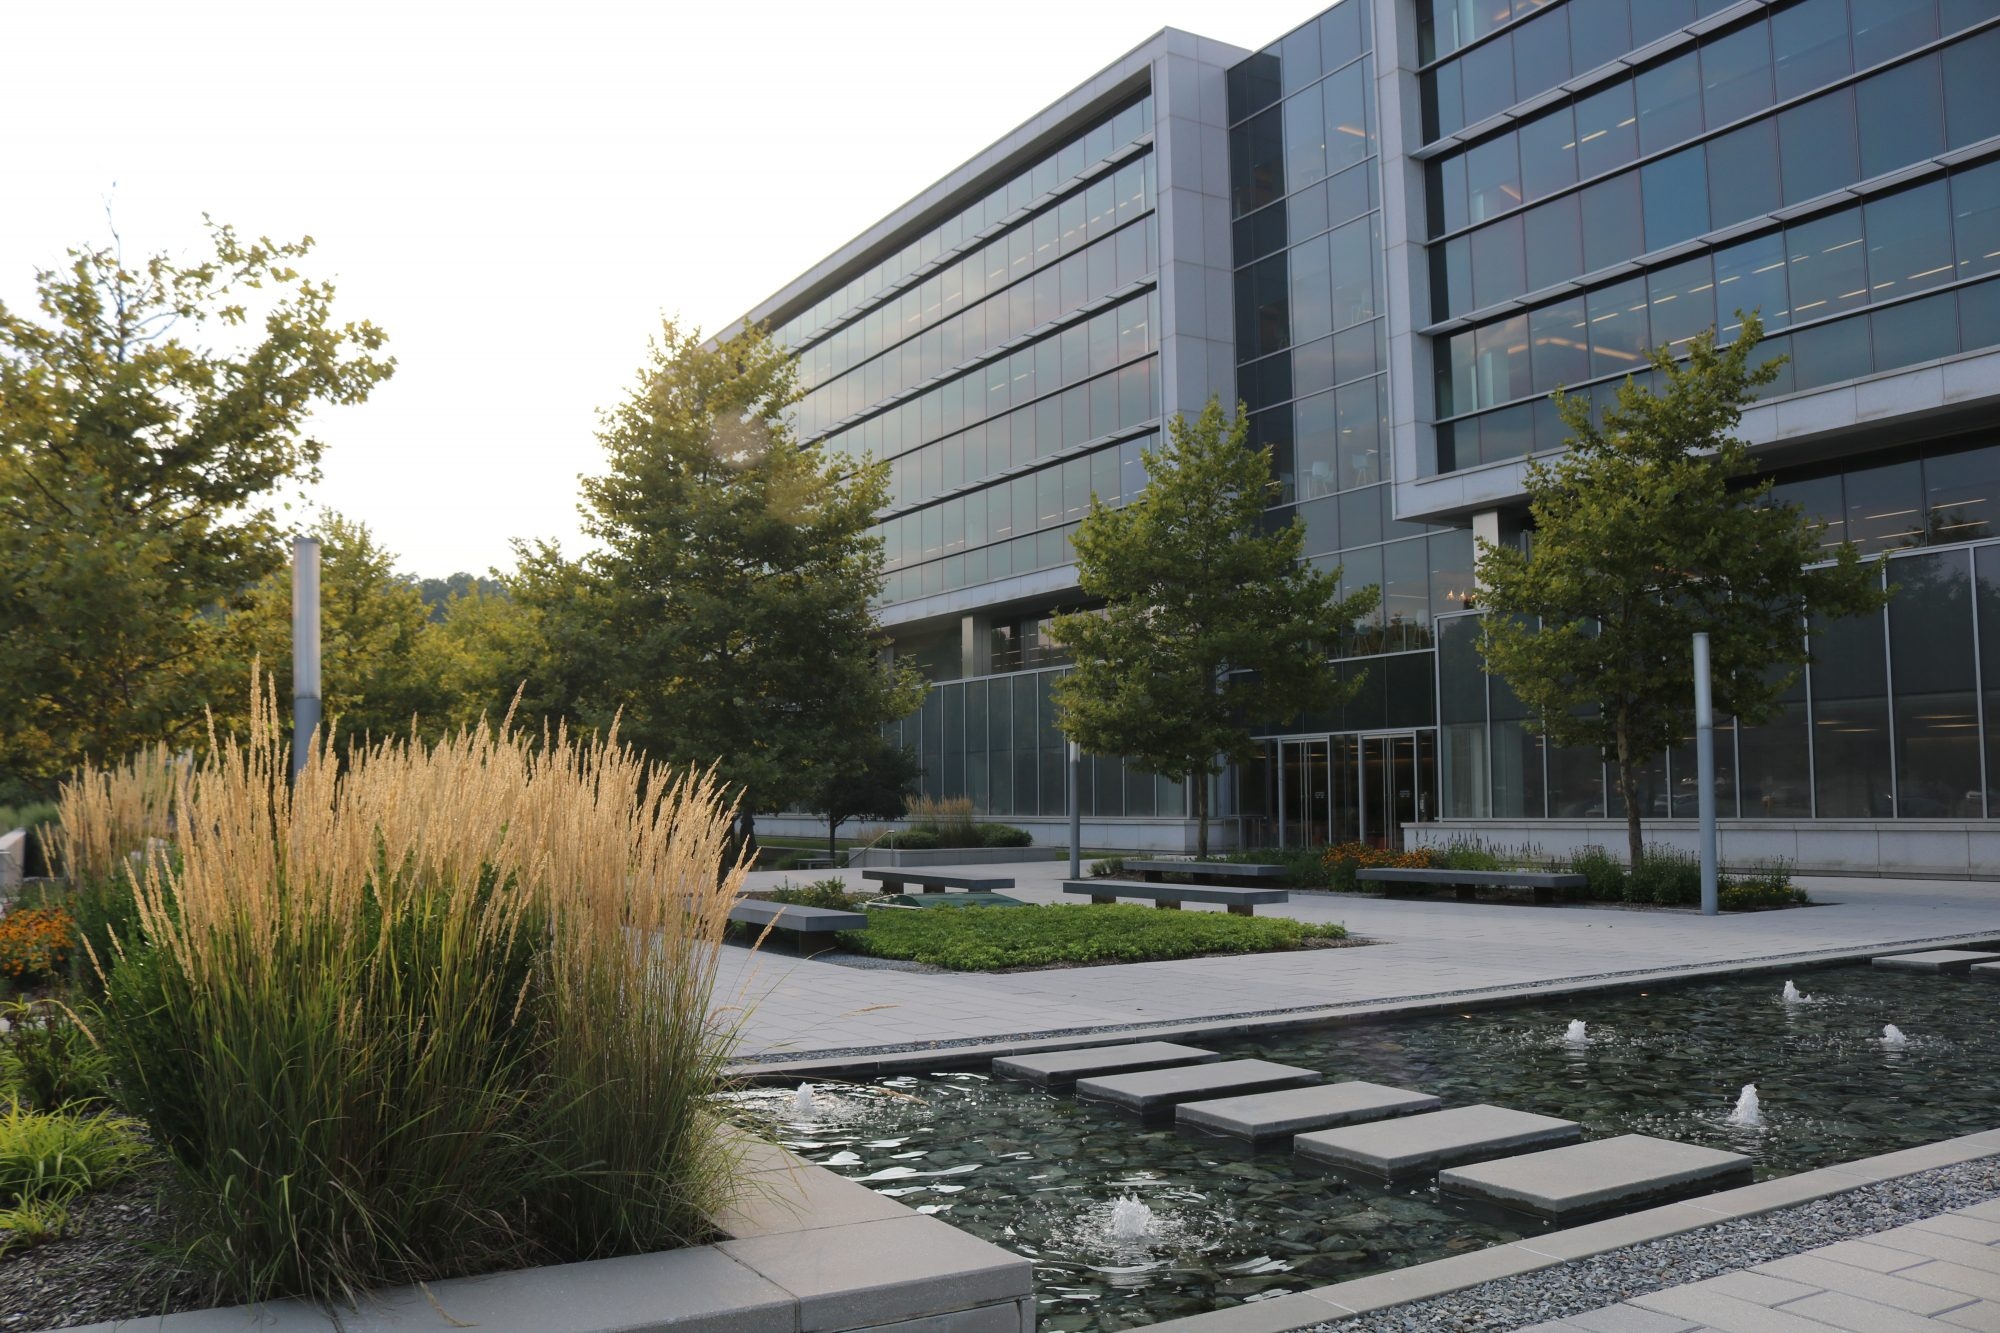 BASF (The Green at Florham Park) Project Image